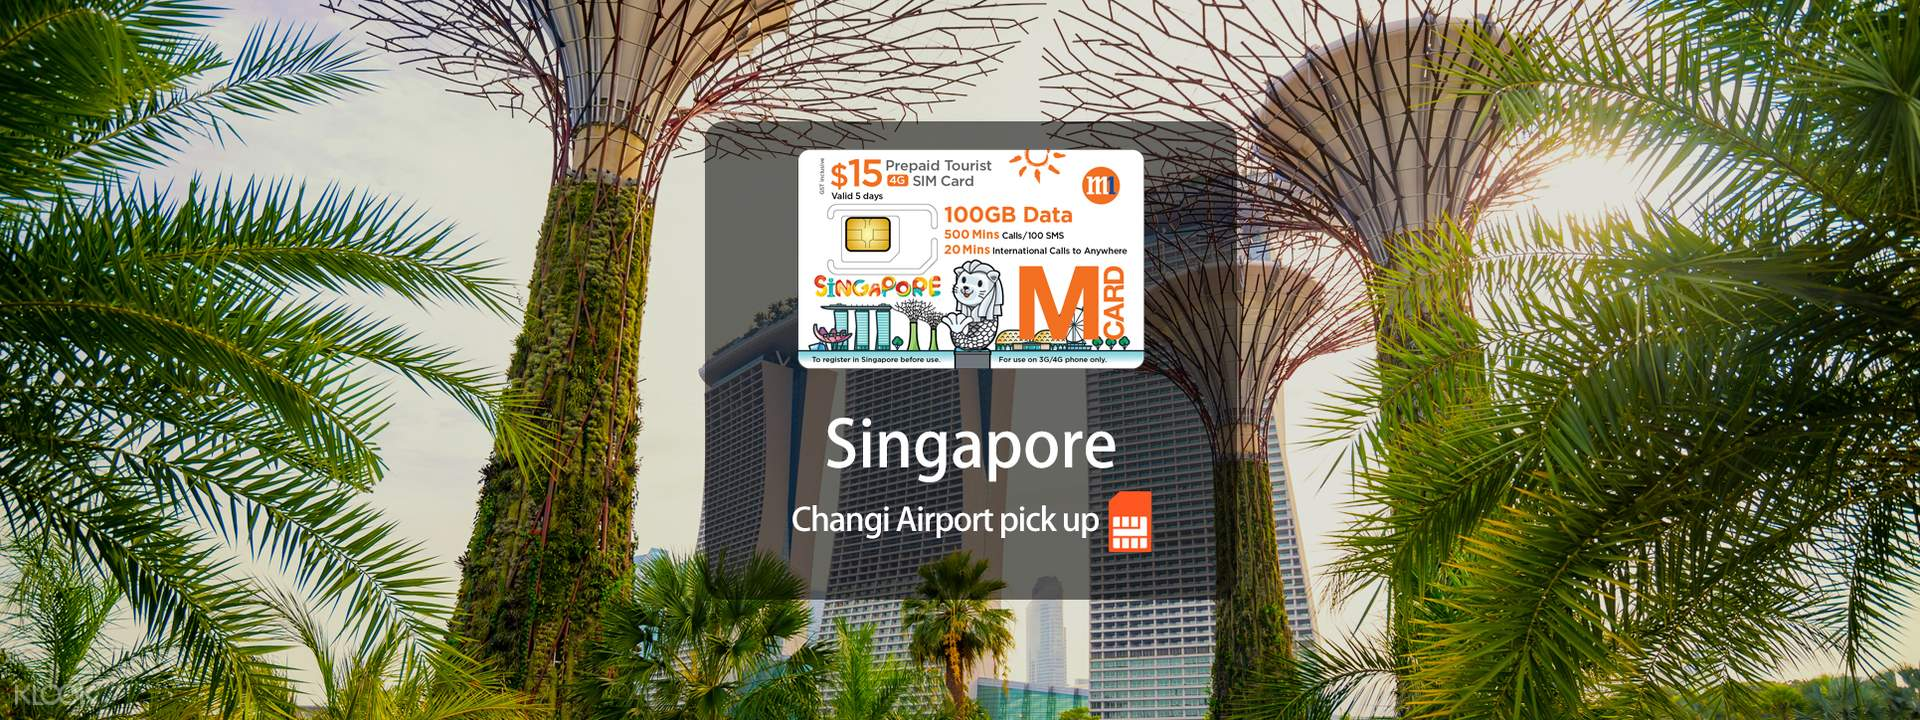 4G SIM Card (SG Pick Up) for Singapore""